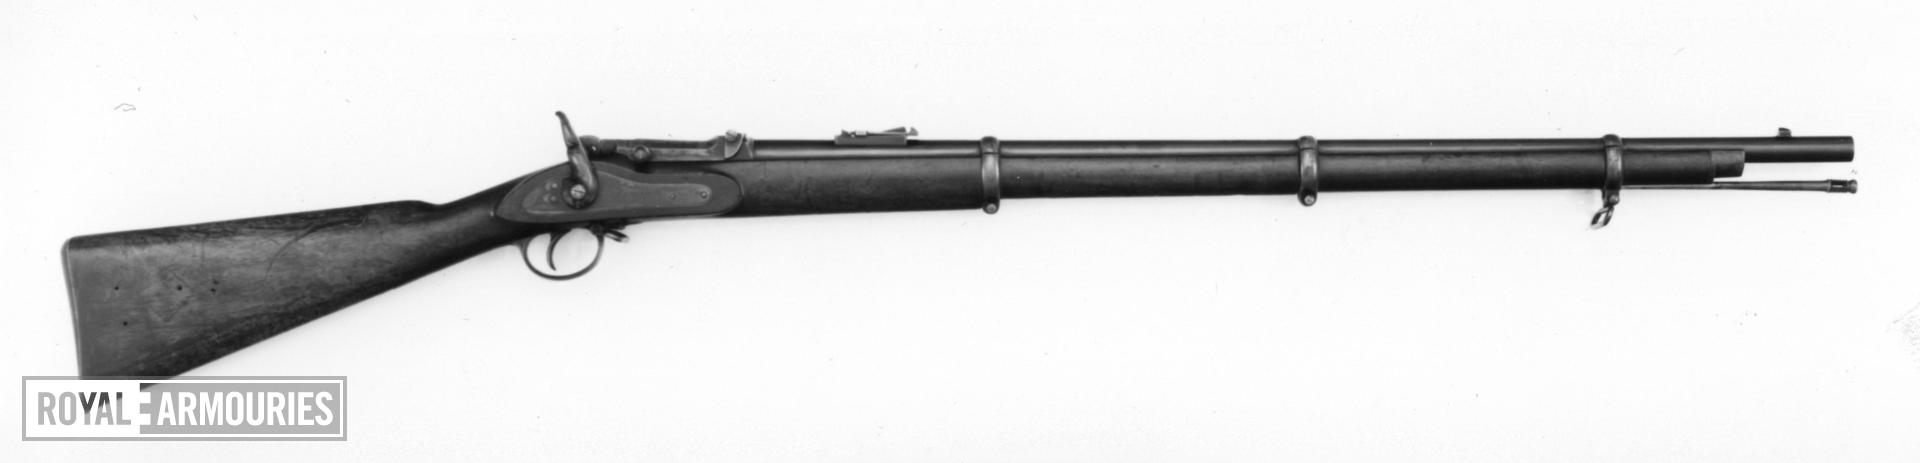 Centrefire breech-loading rifle - Braendlin-Albini No. 6